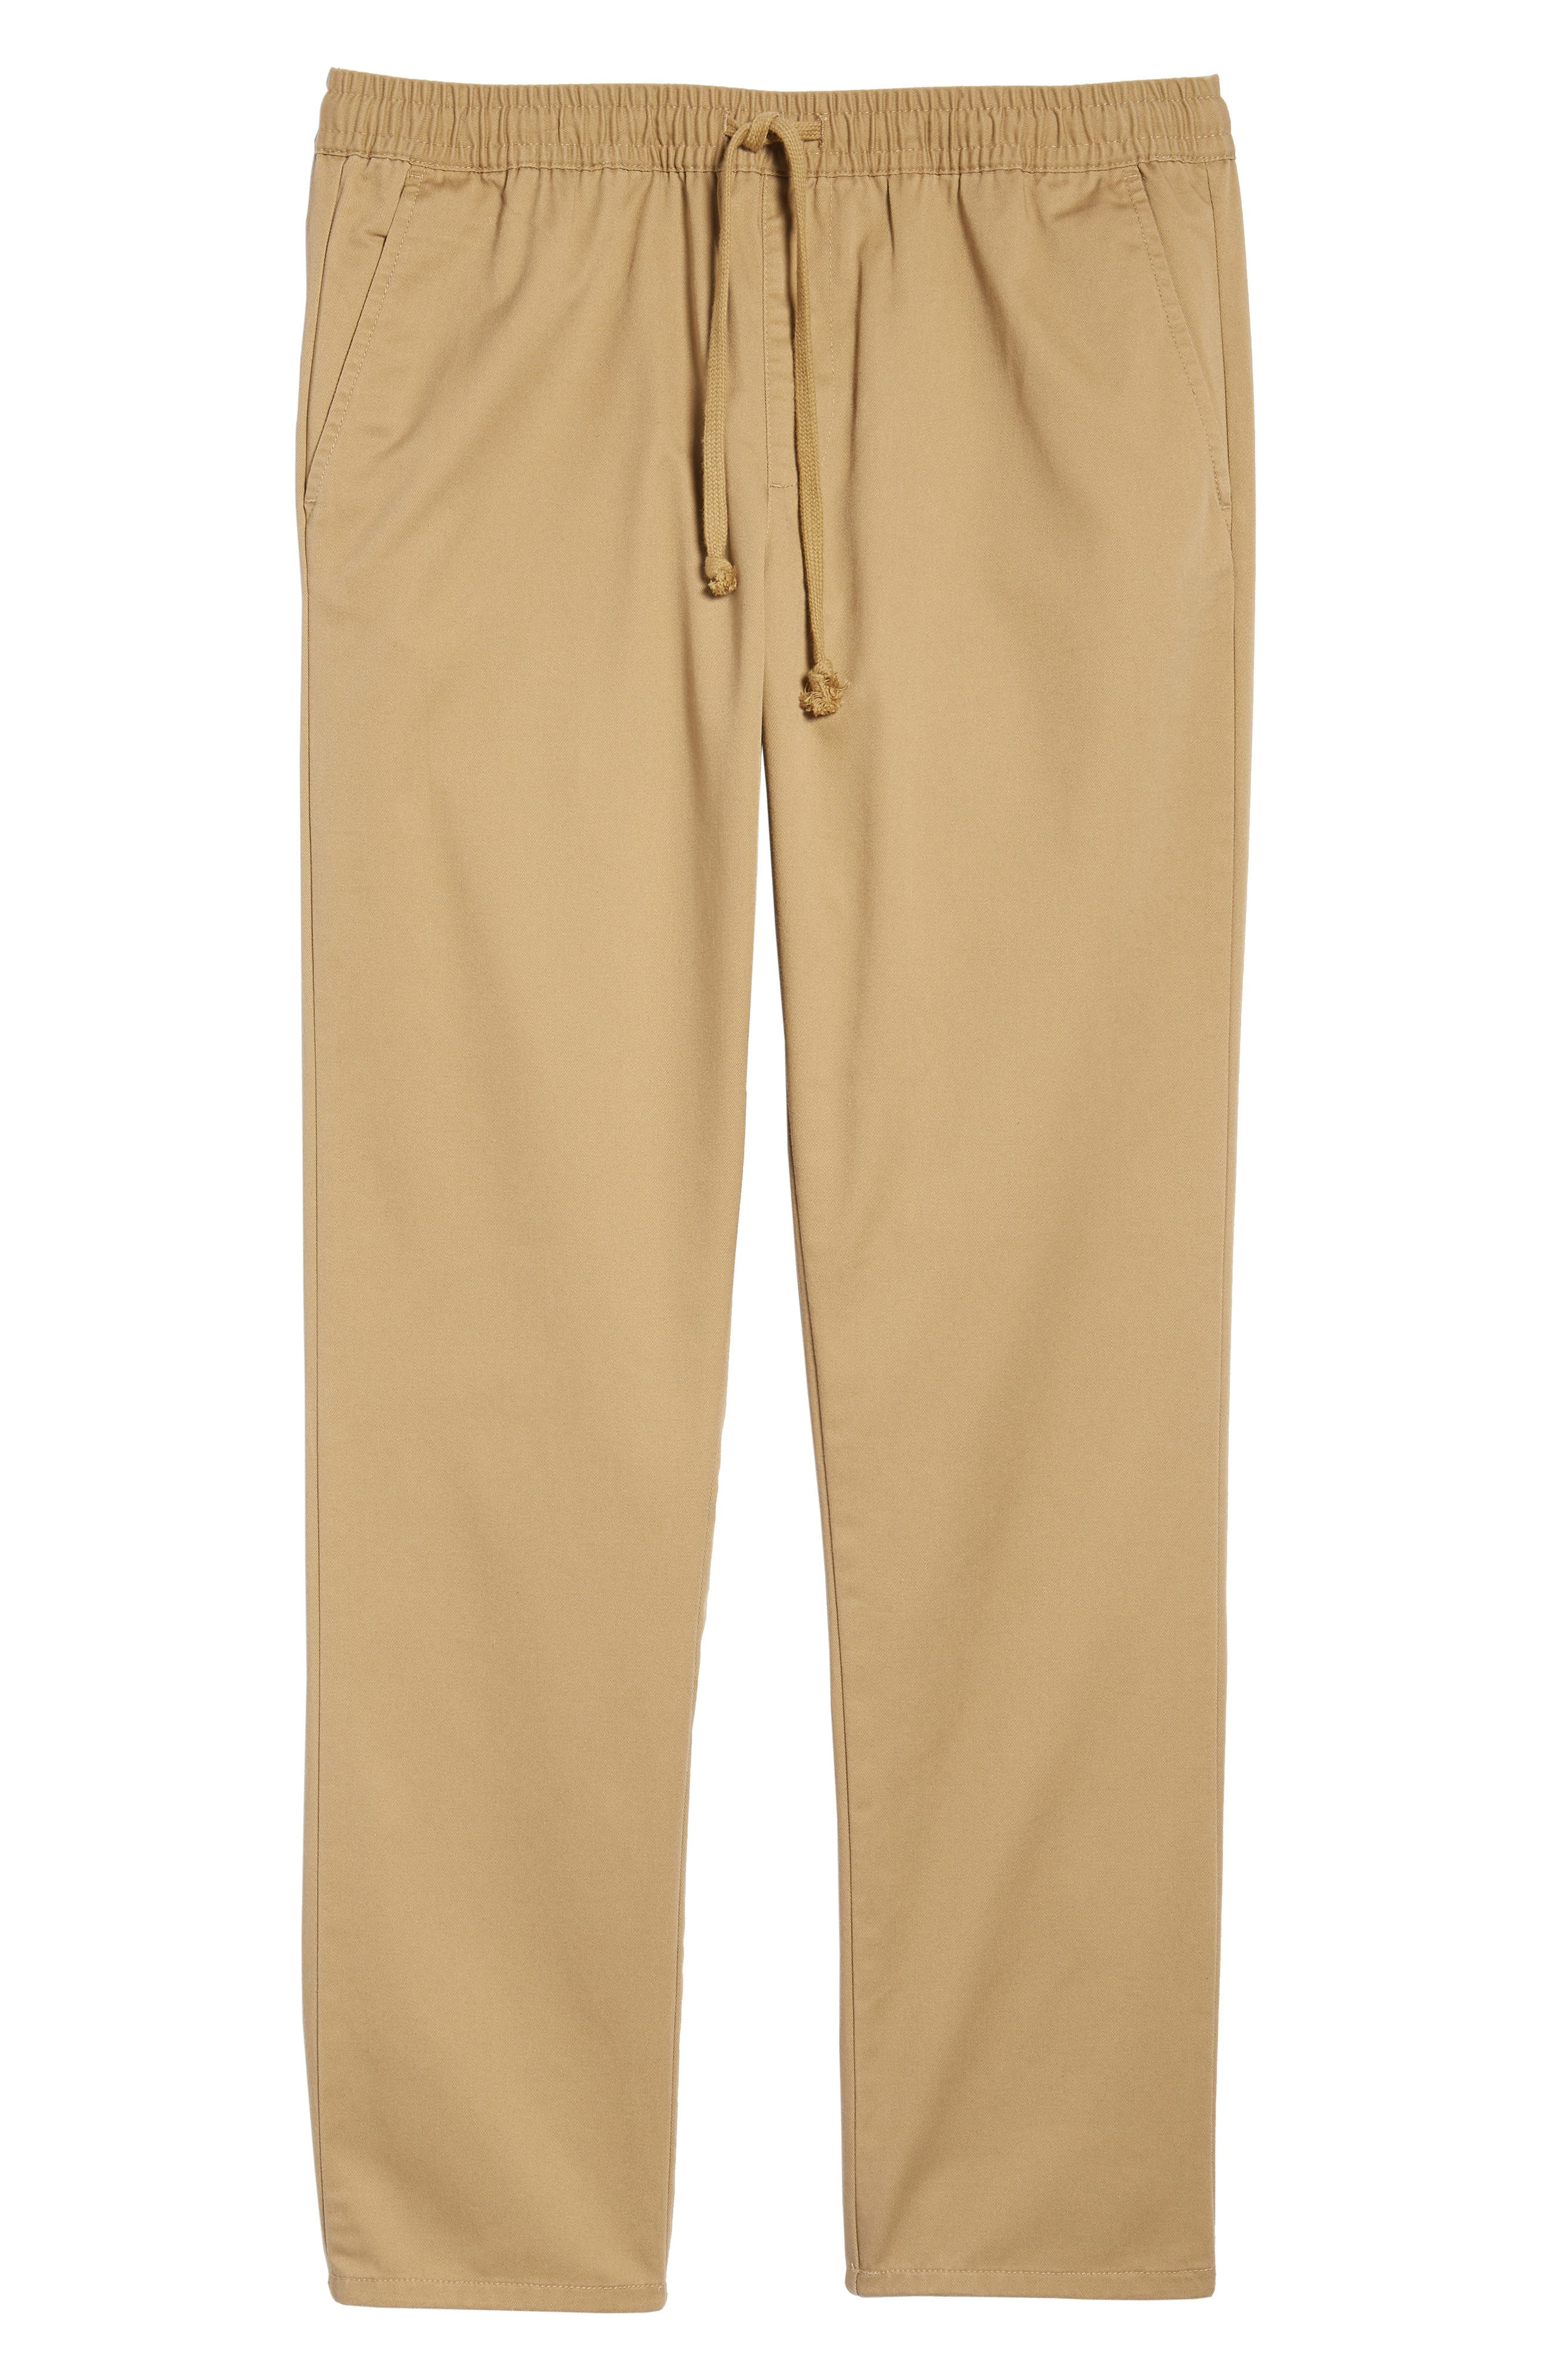 A.T. Dayshift Pants,                             Alternate thumbnail 6, color,                             Dark Sand